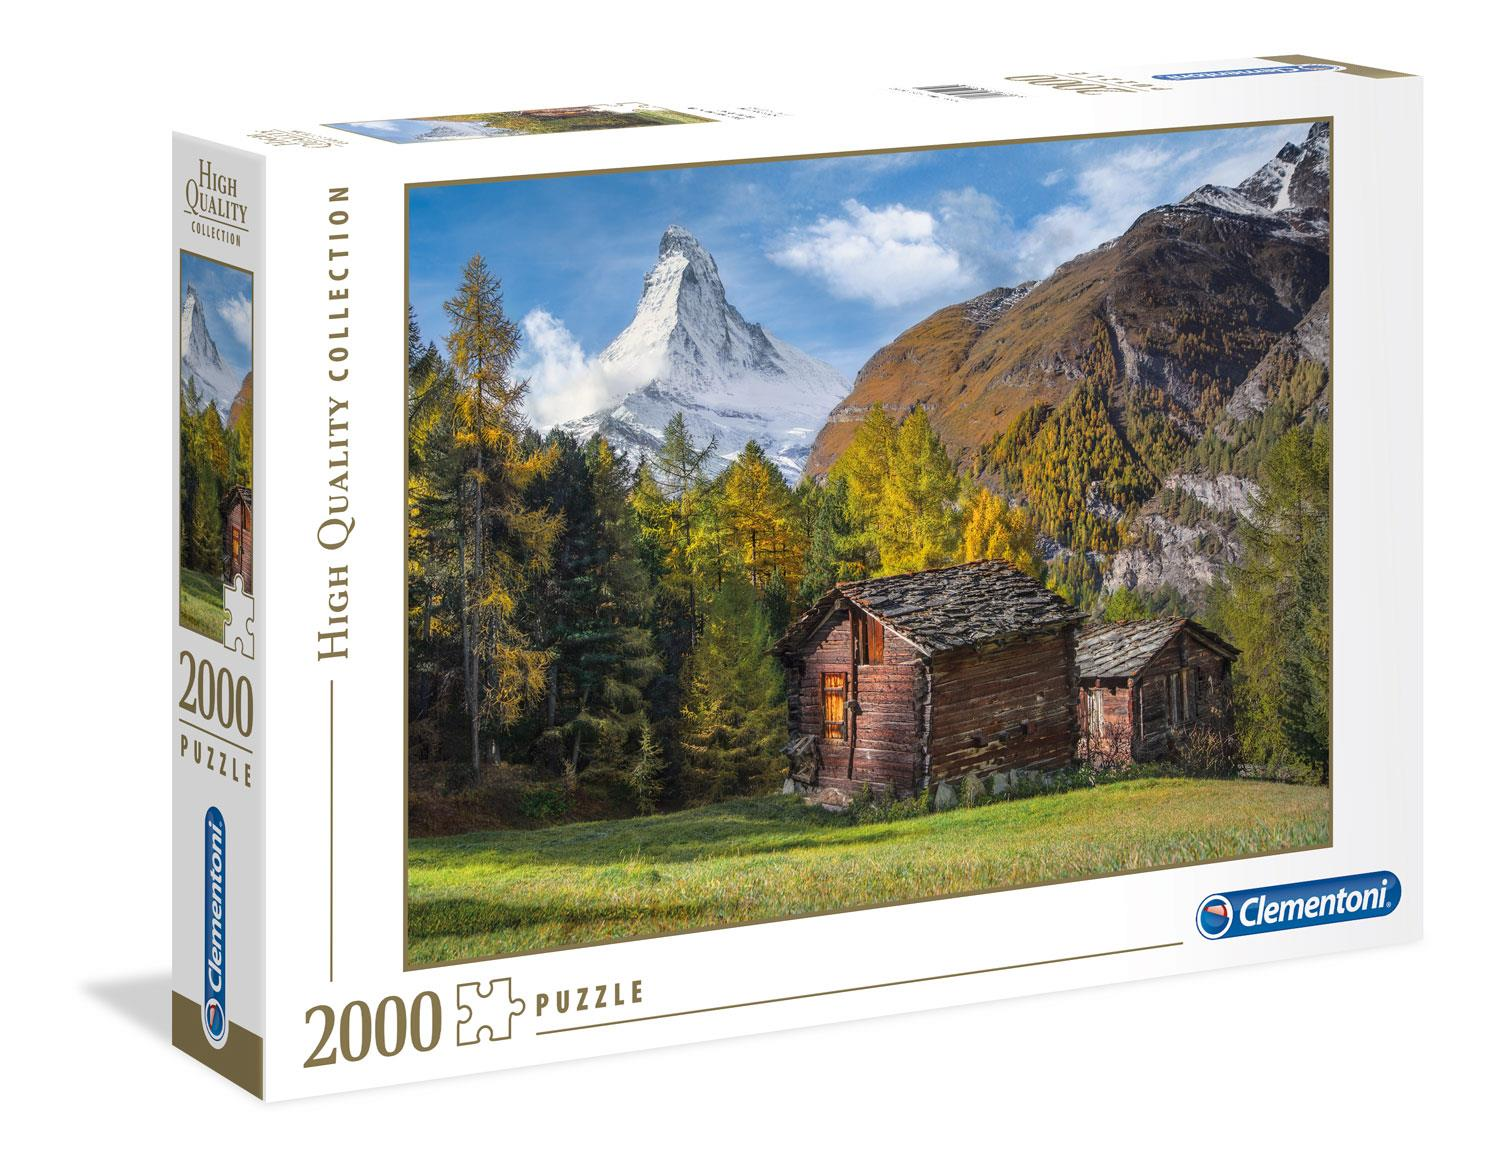 Clementoni Fascination With Matterhorn High Quality Jigsaw Puzzle (2000 Pieces)